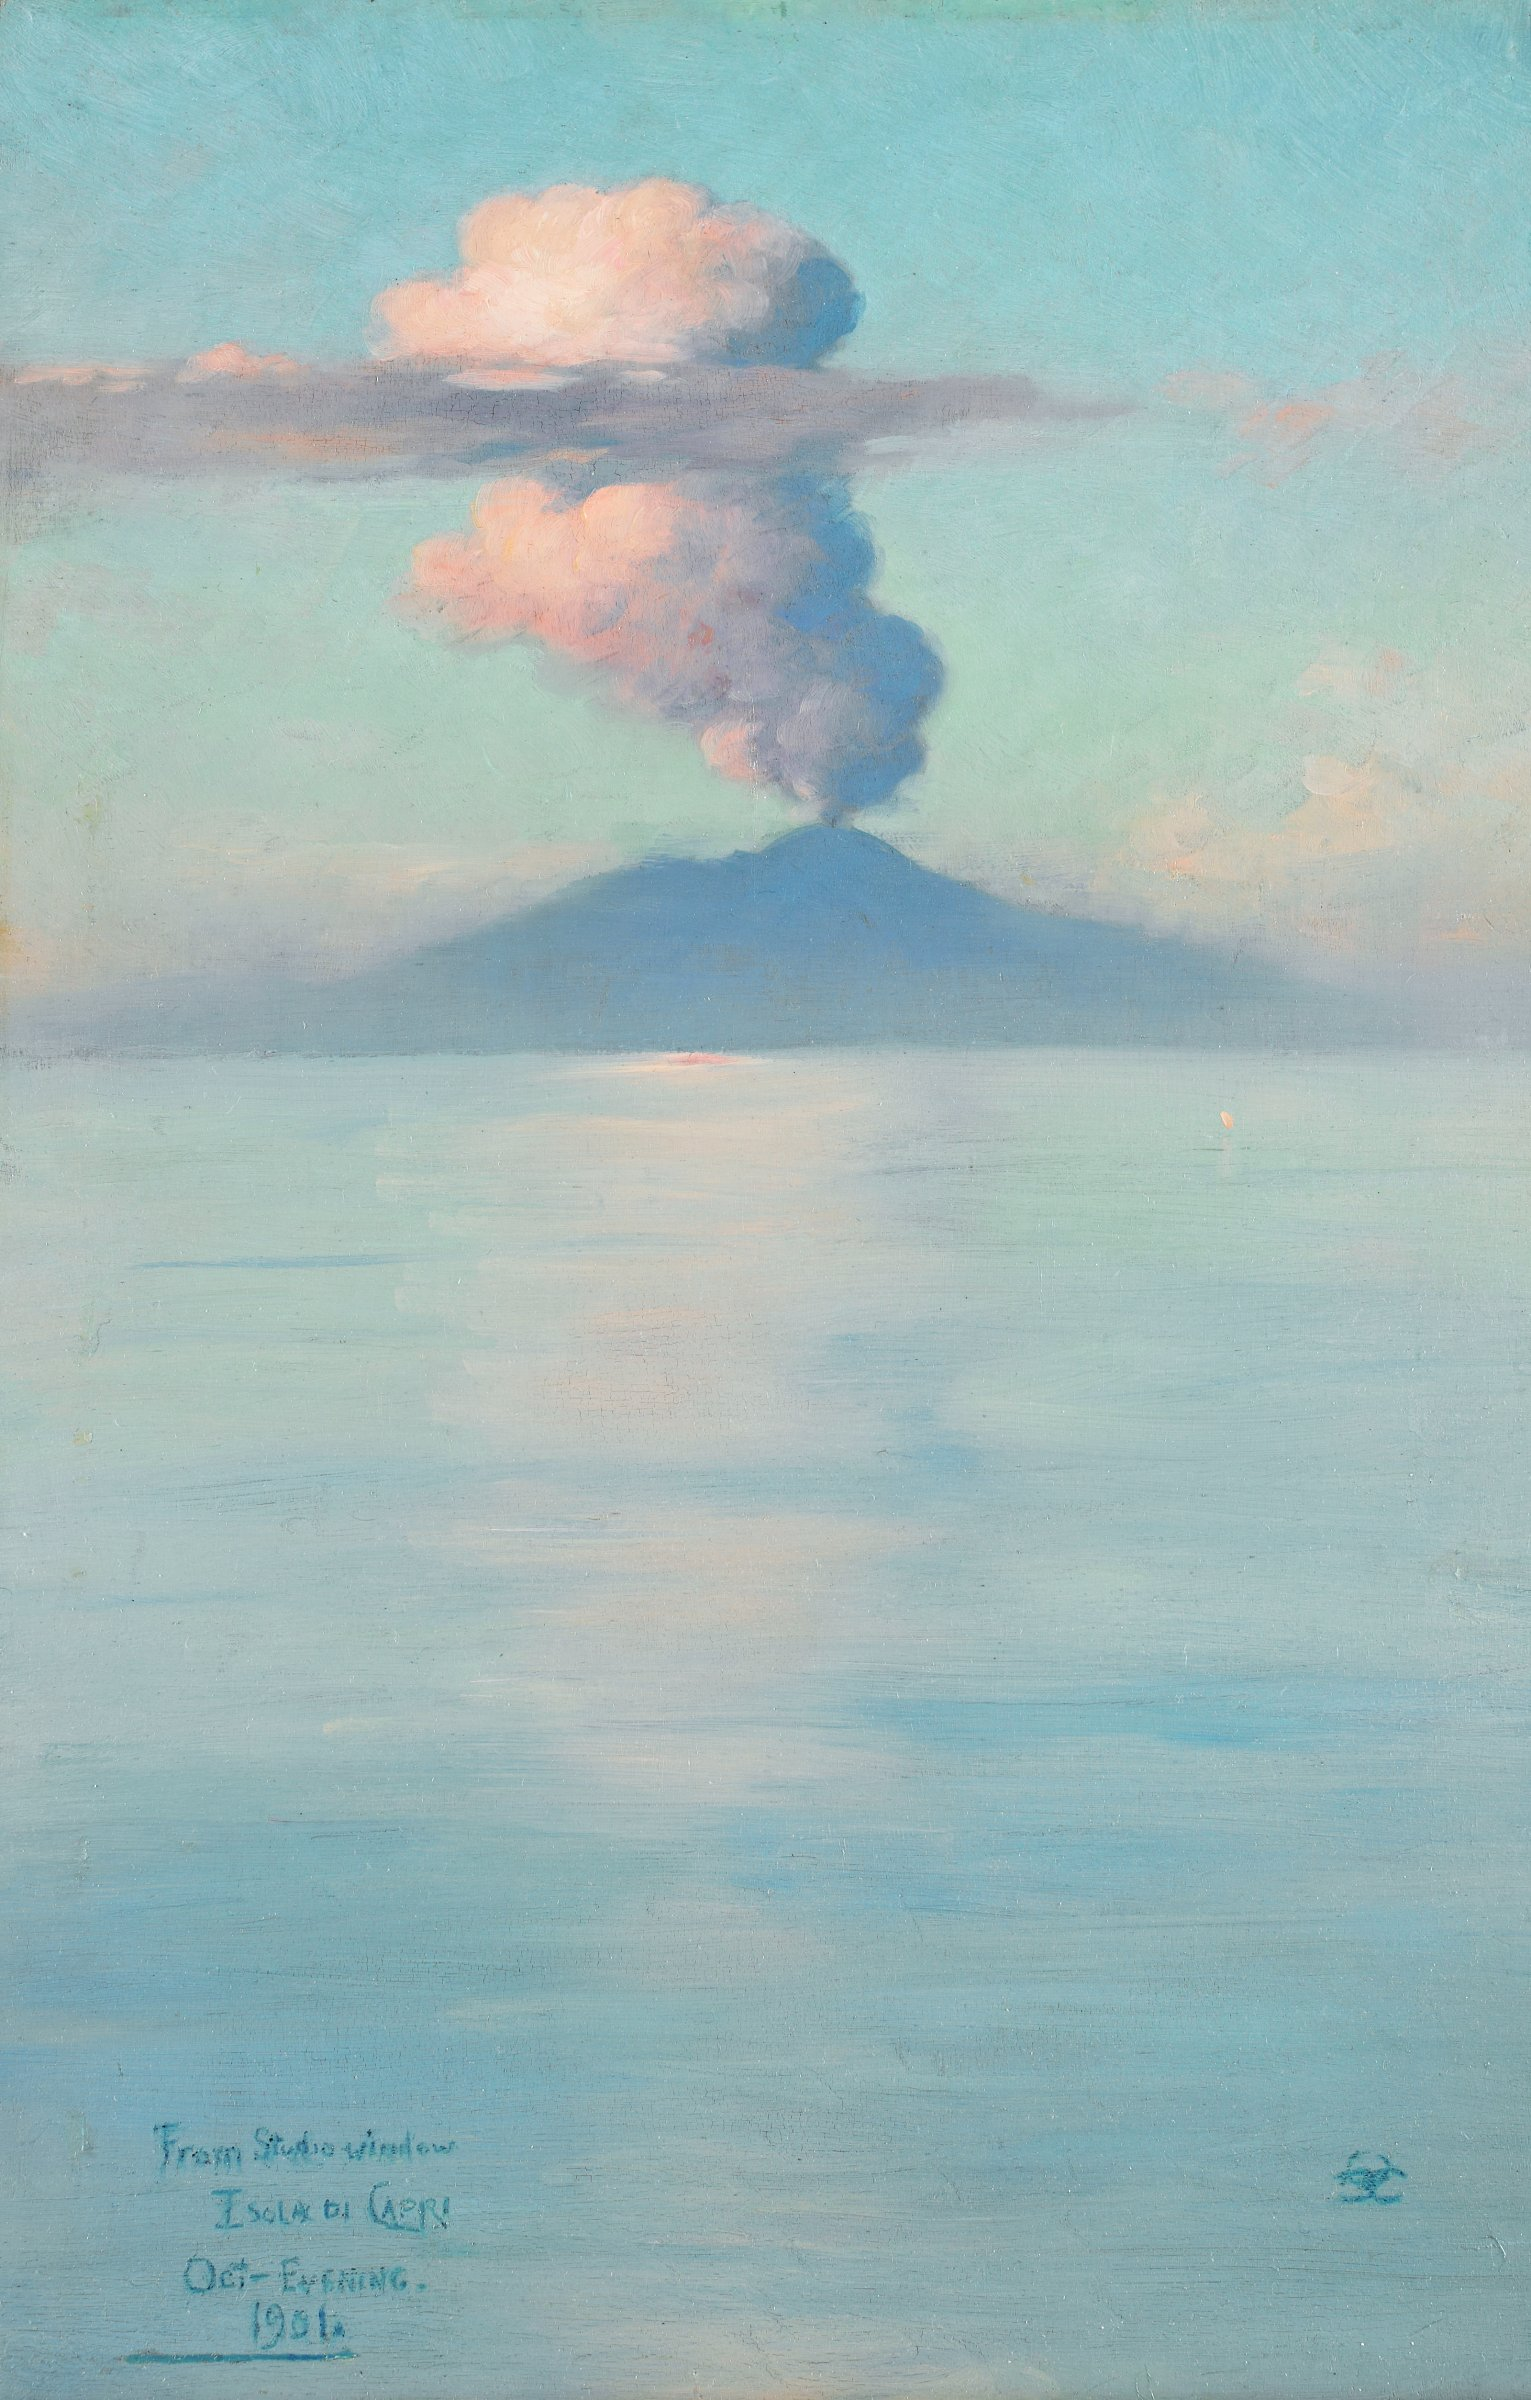 The work depicts an erupting volcano (Mount Vesuvius) with plume of ash and smoke in distant background, transected by a long horizontal cloud. A vast expanse of placid water (Tyrrhenian Sea), receding in space to the base of the volcano, fills the fore- and middle-ground.